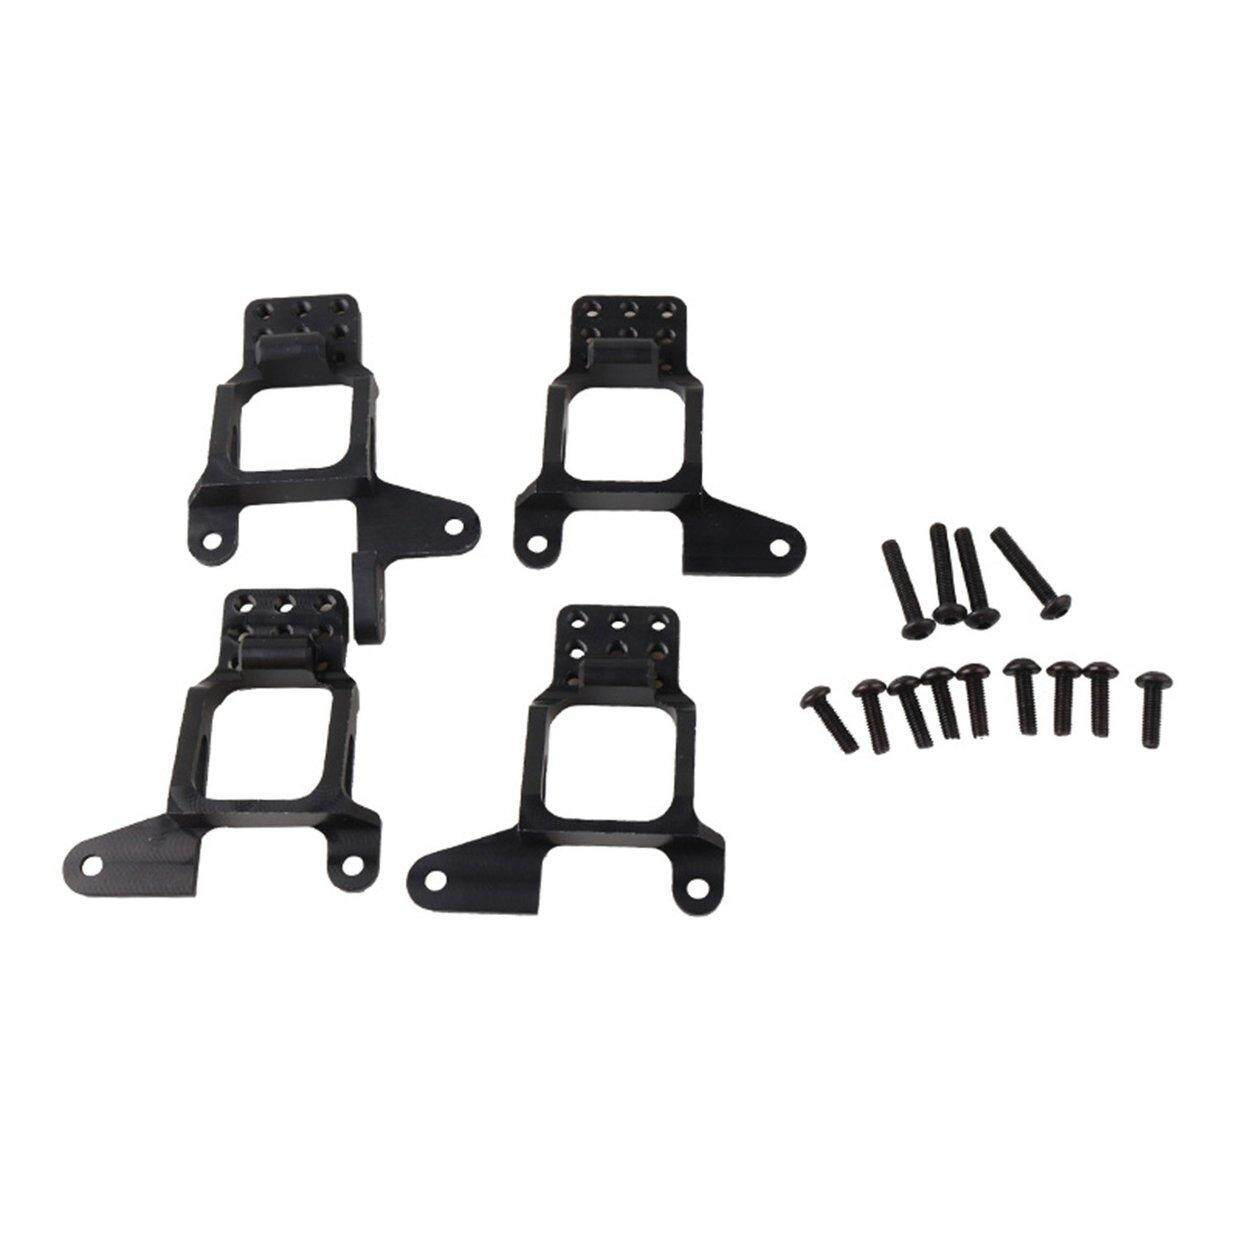 CELE 4PCS Front And Rear Shock Absorber Suspension Bracket For 1/10 Traxxas TRX4 RC